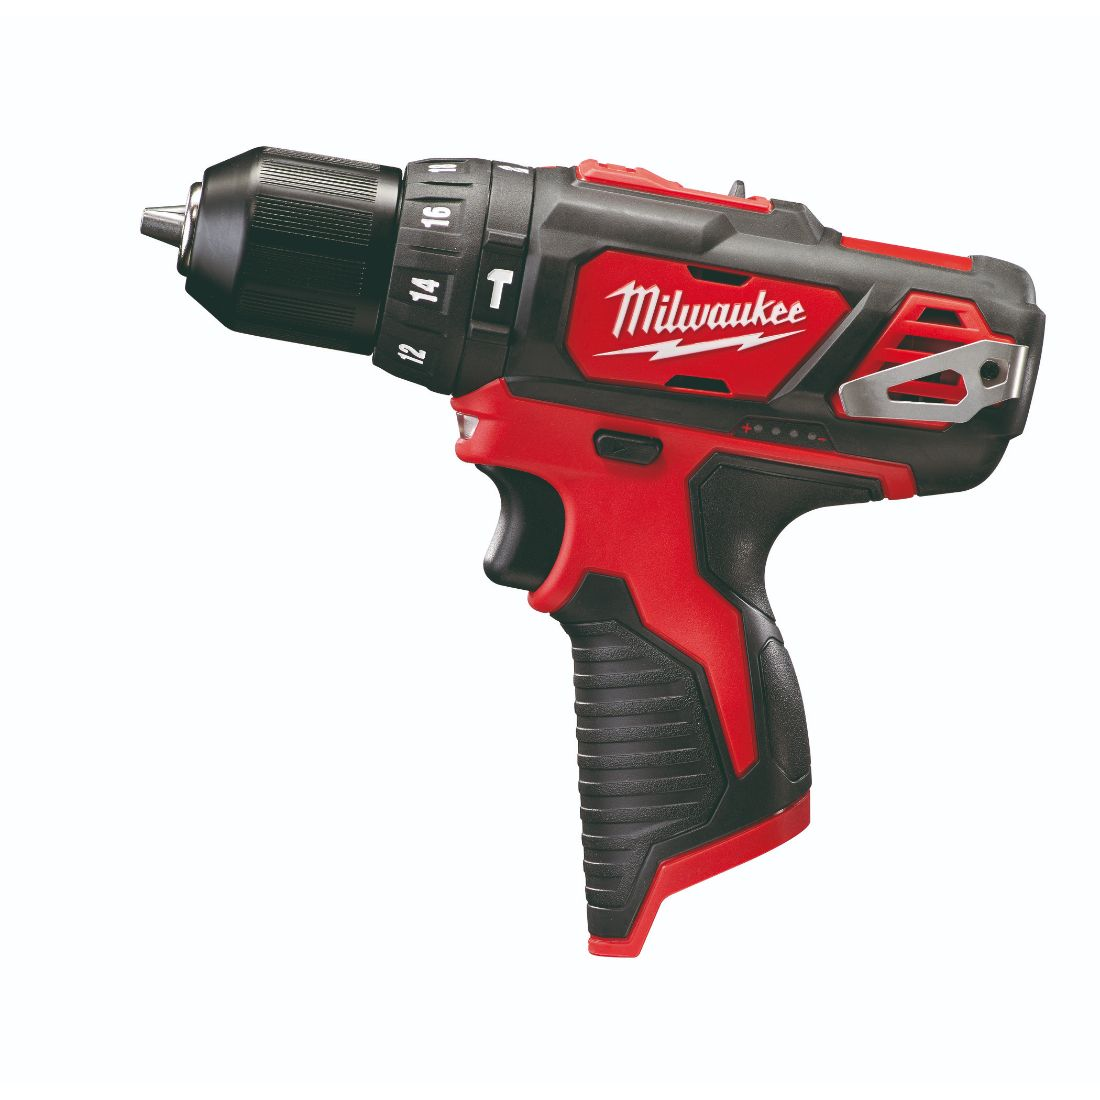 M12 Hammer Drill and Driver 10mm